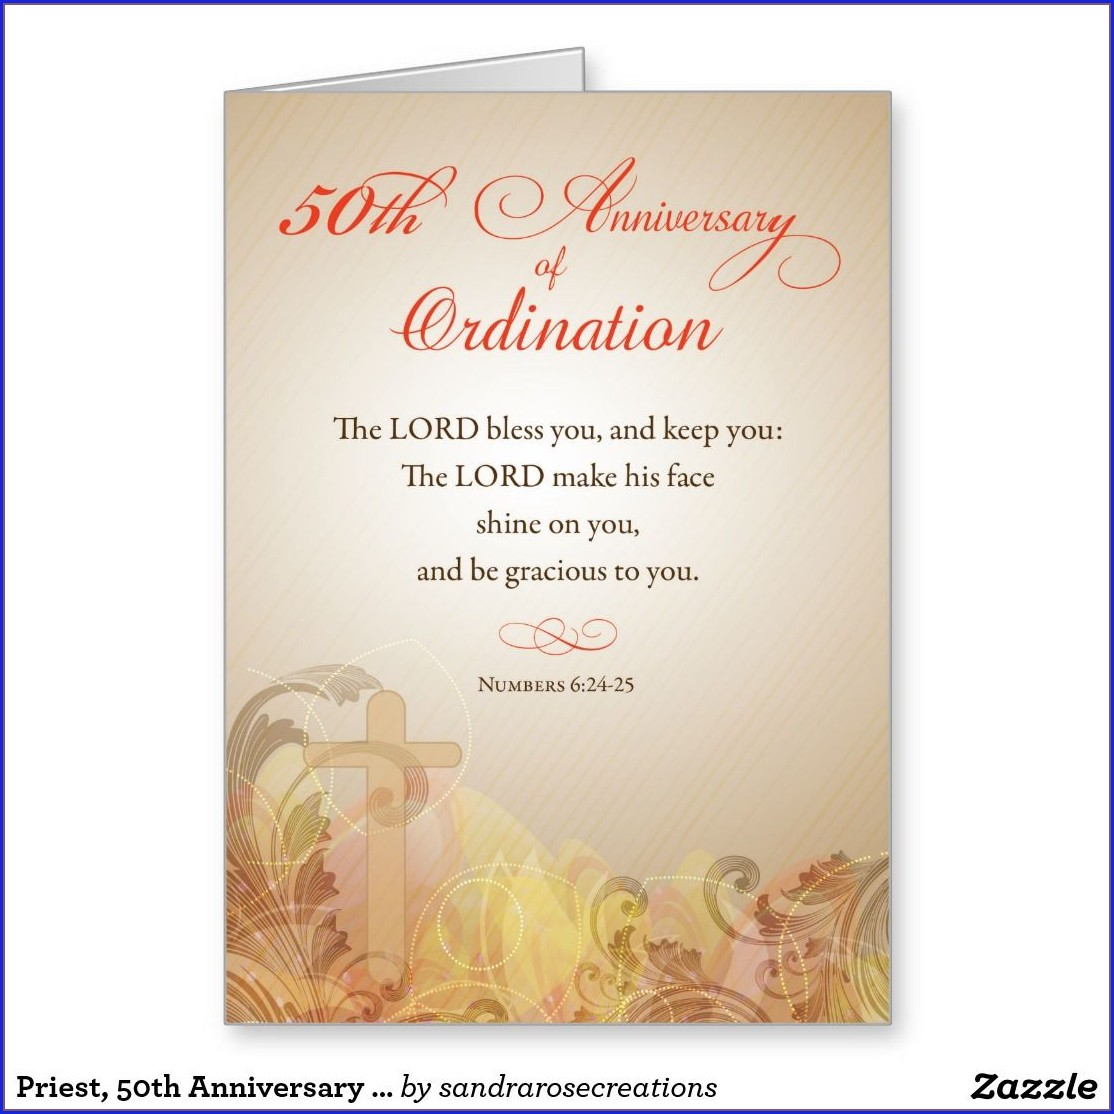 Priestly Ordination Ordination Invitation Card Sample